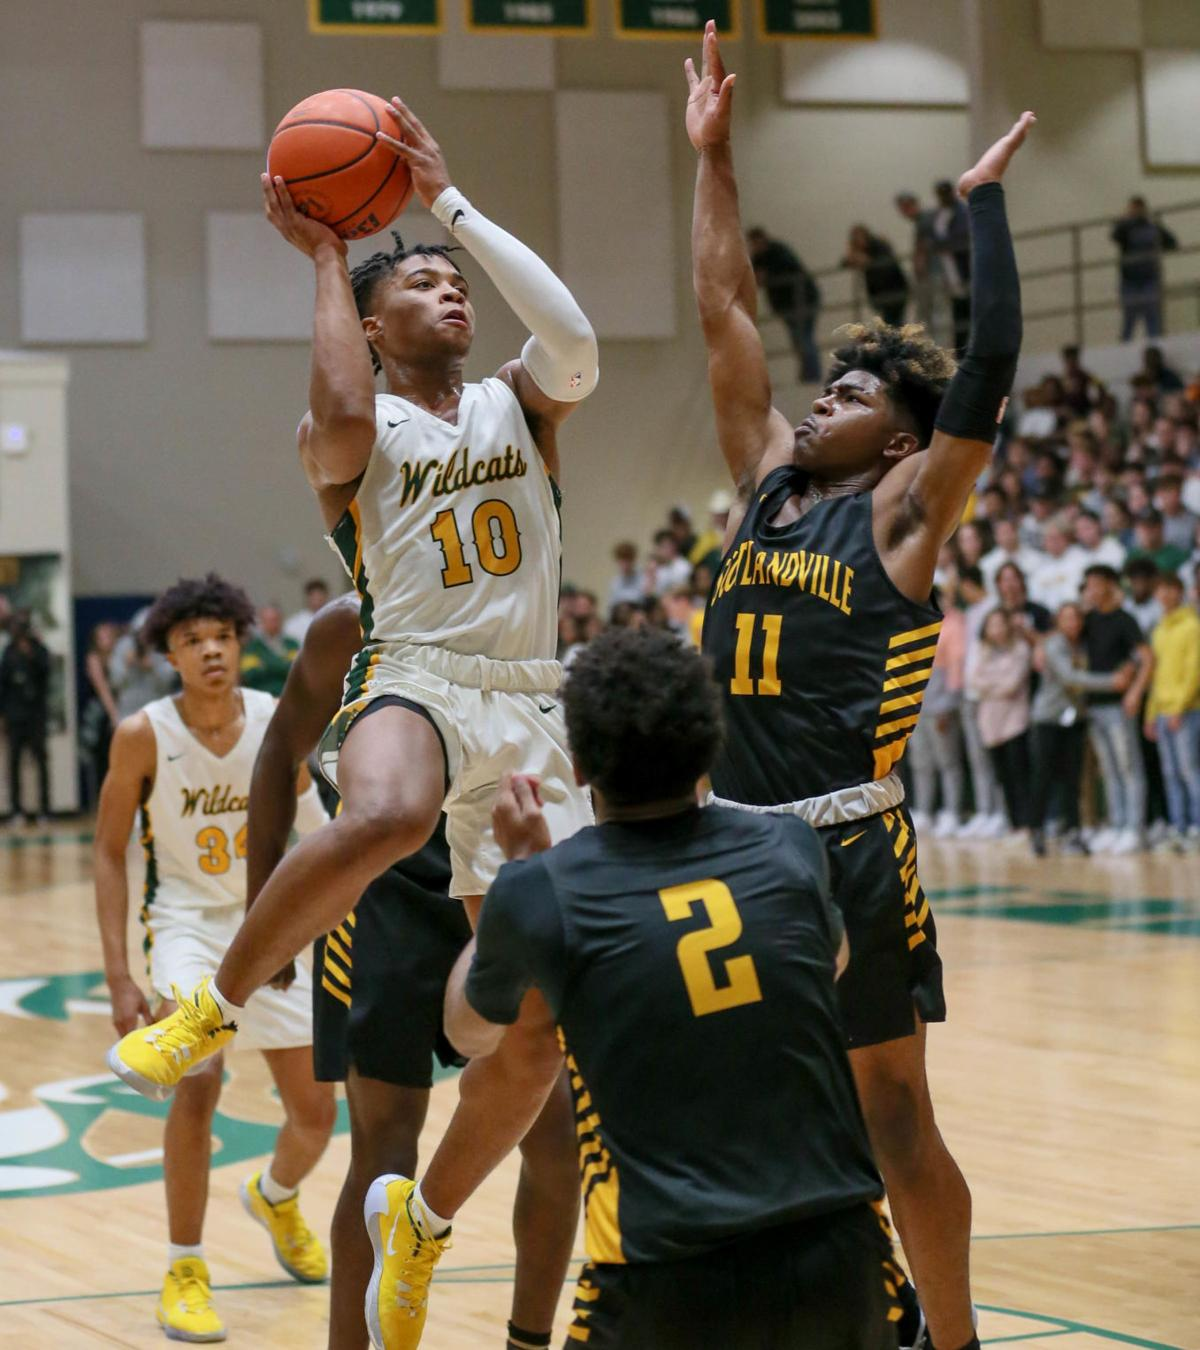 Walker vs. Scotlandville Bbkb: Jalen Cook